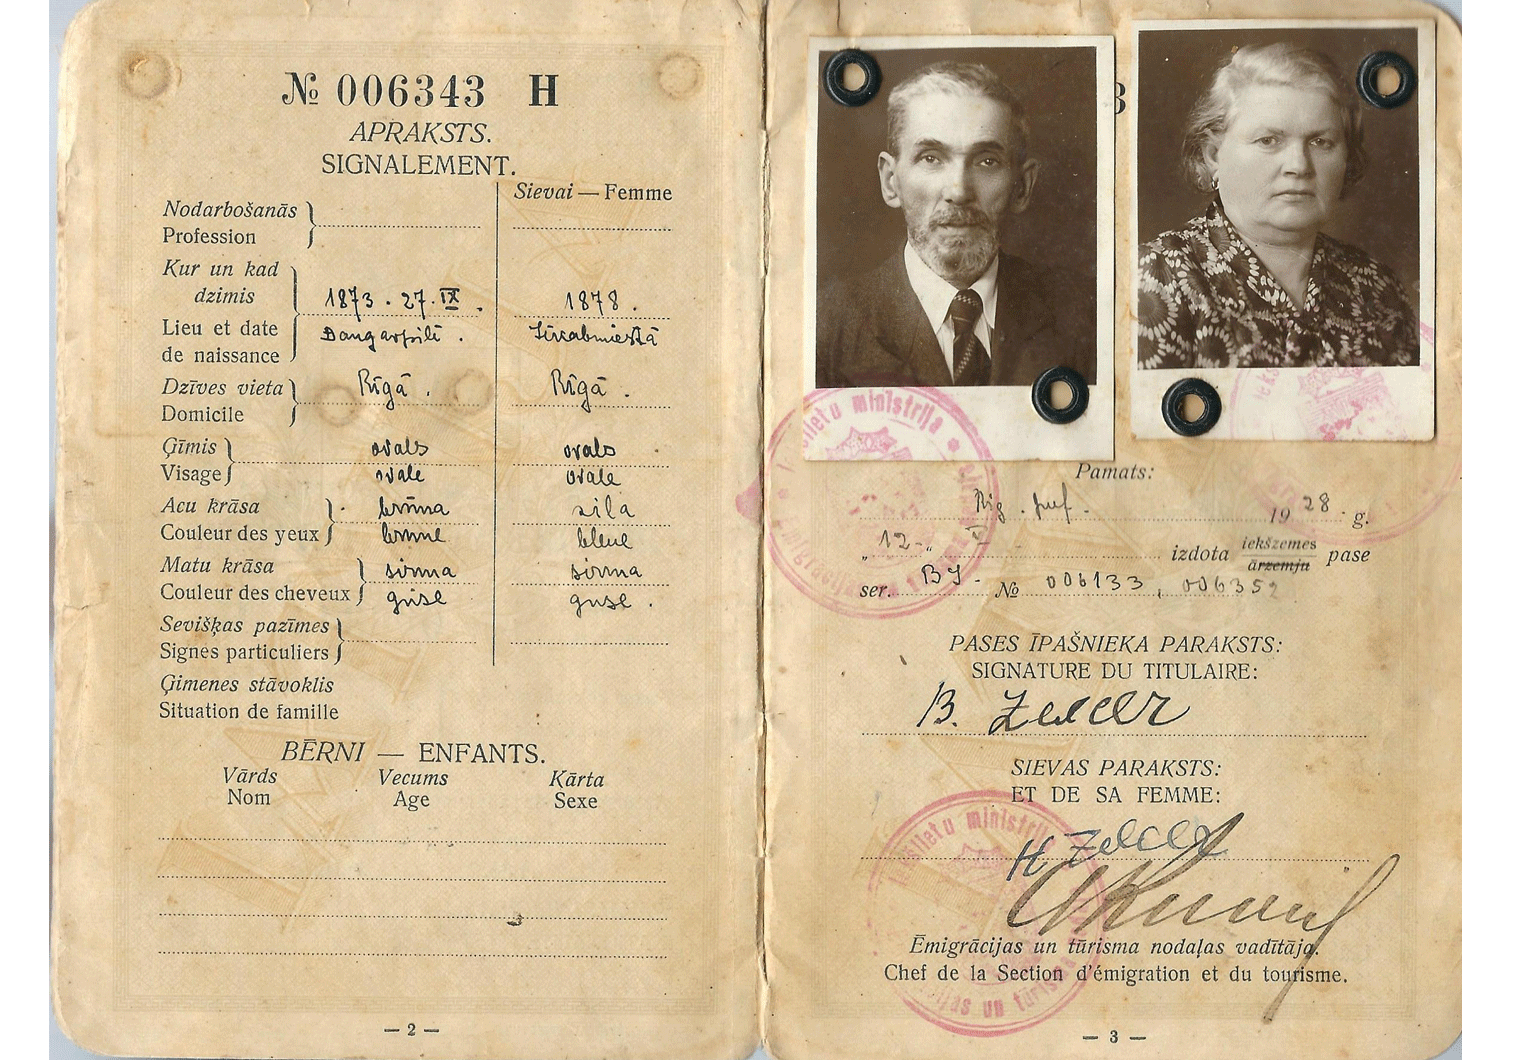 1934 Latvian passport for the Mandate